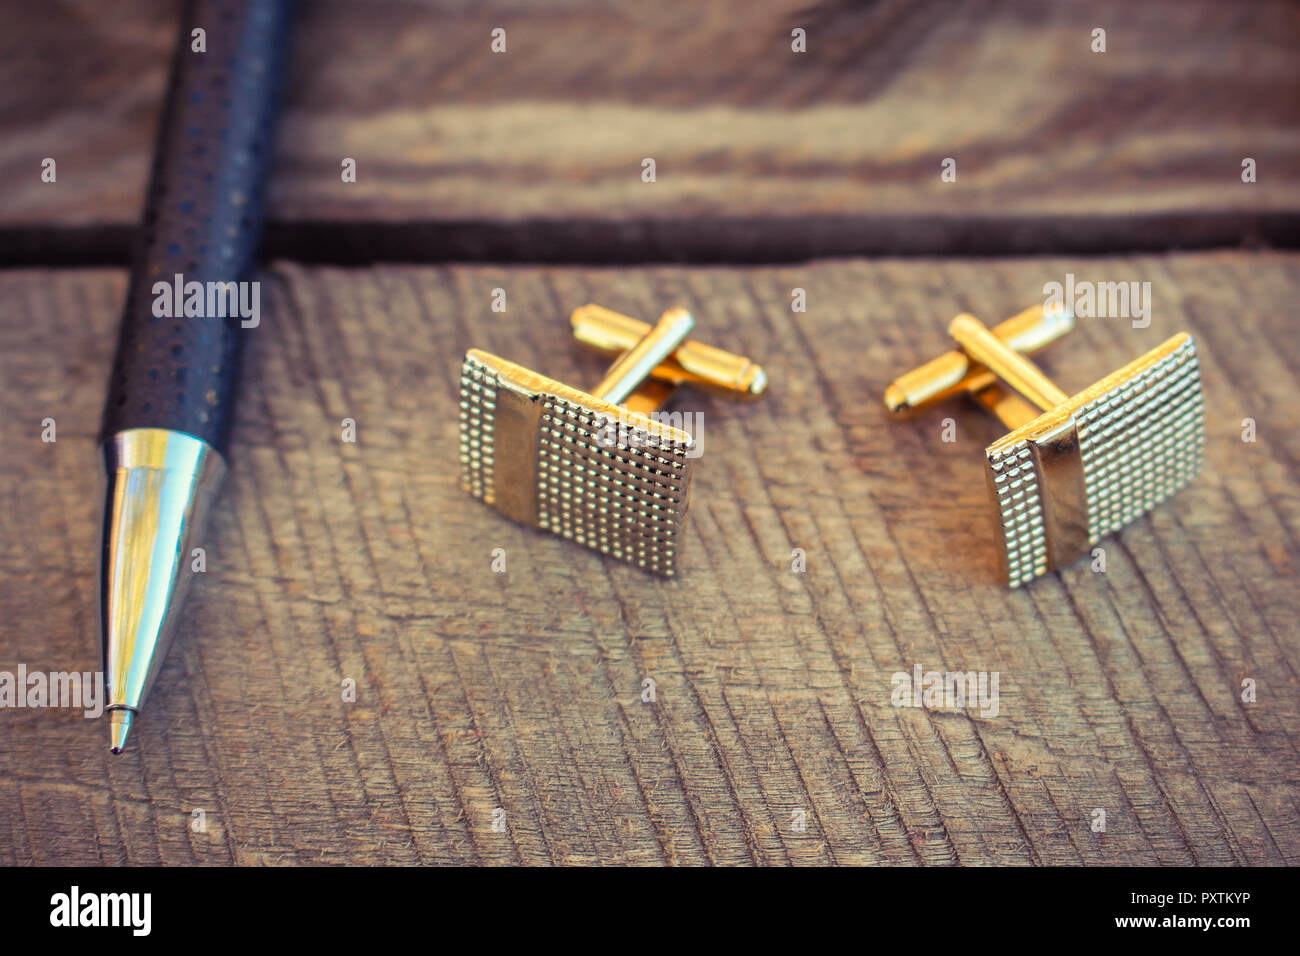 Pen, dollars and cufflinks on the old wood background - Stock Image